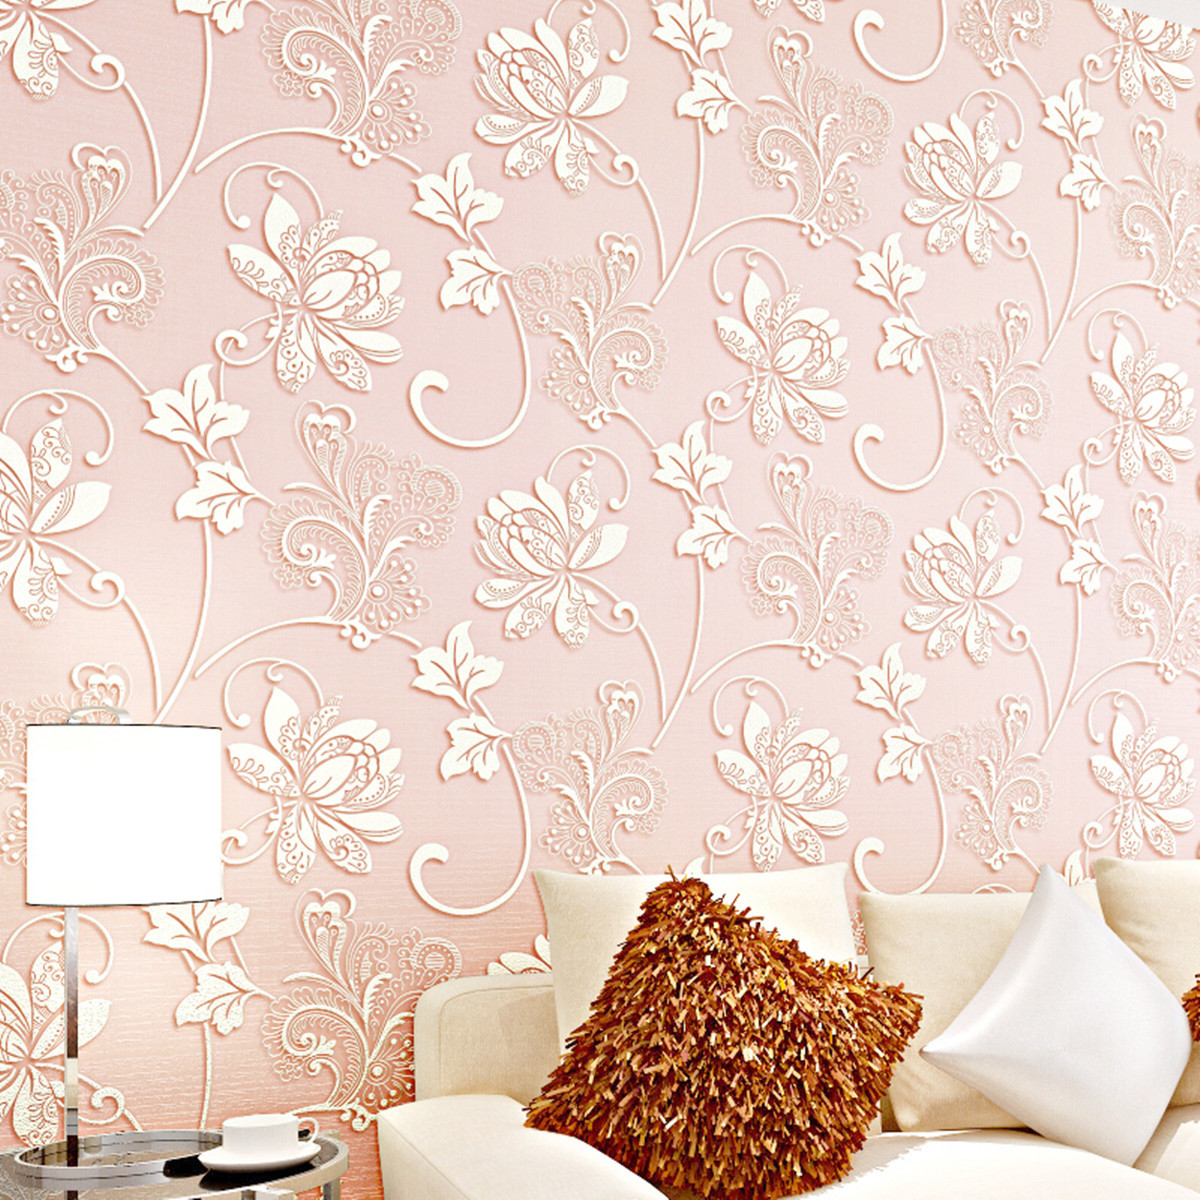 10M Concave-convex Wallpapers 3D Embossed Textured Non-woven Flocking Wallpaper Rolls